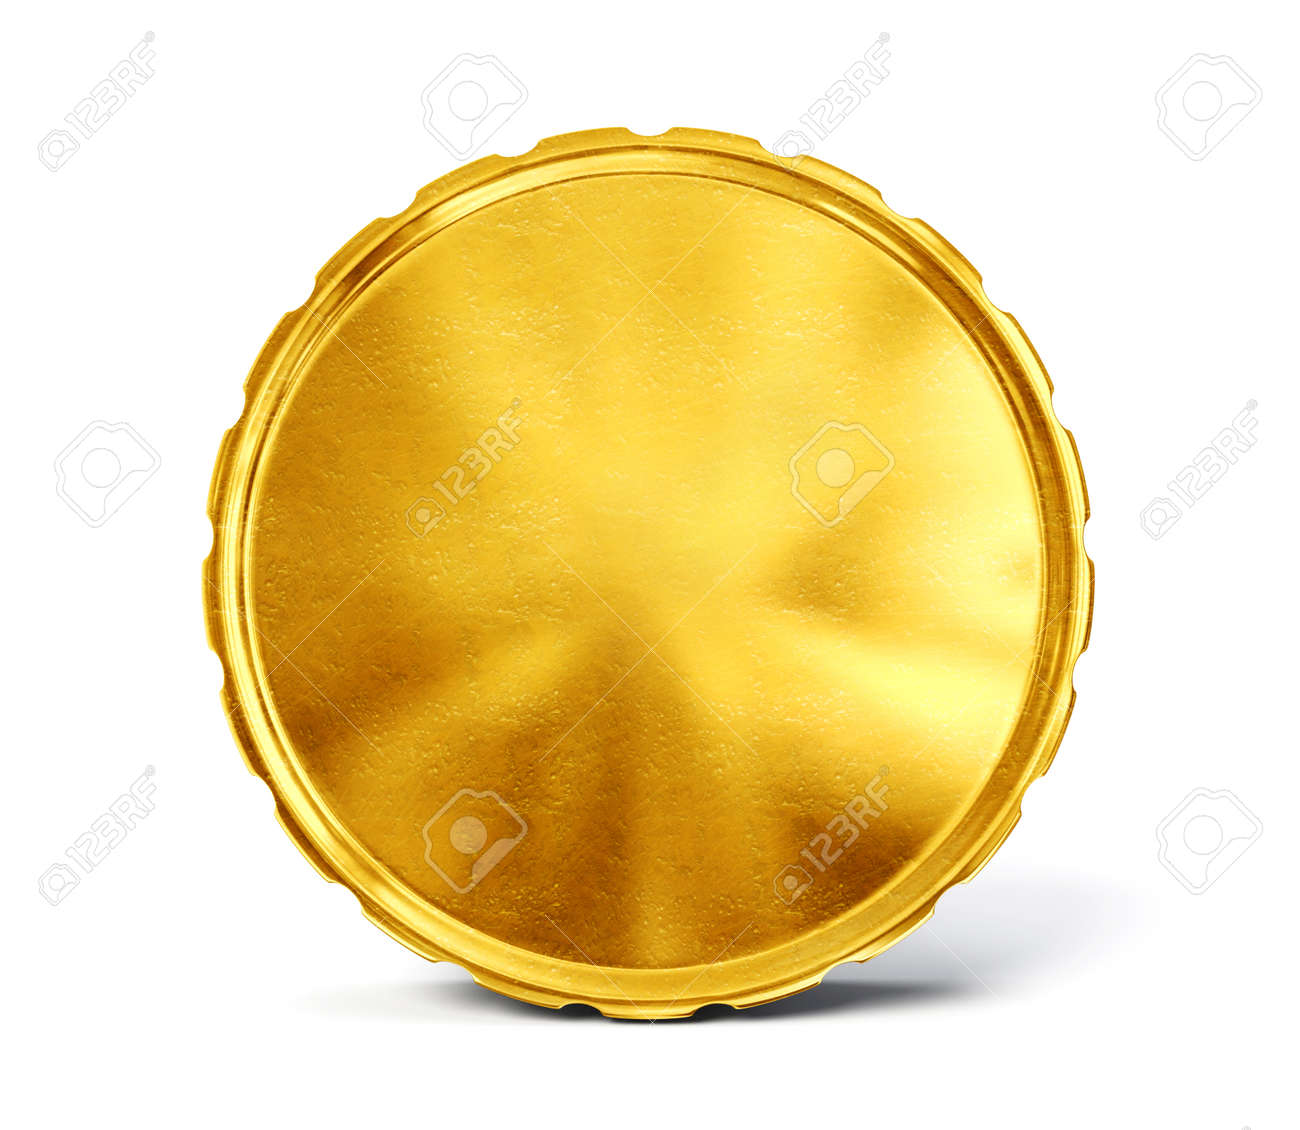 gold coin isolated on a white. 3d illustration - 36058942